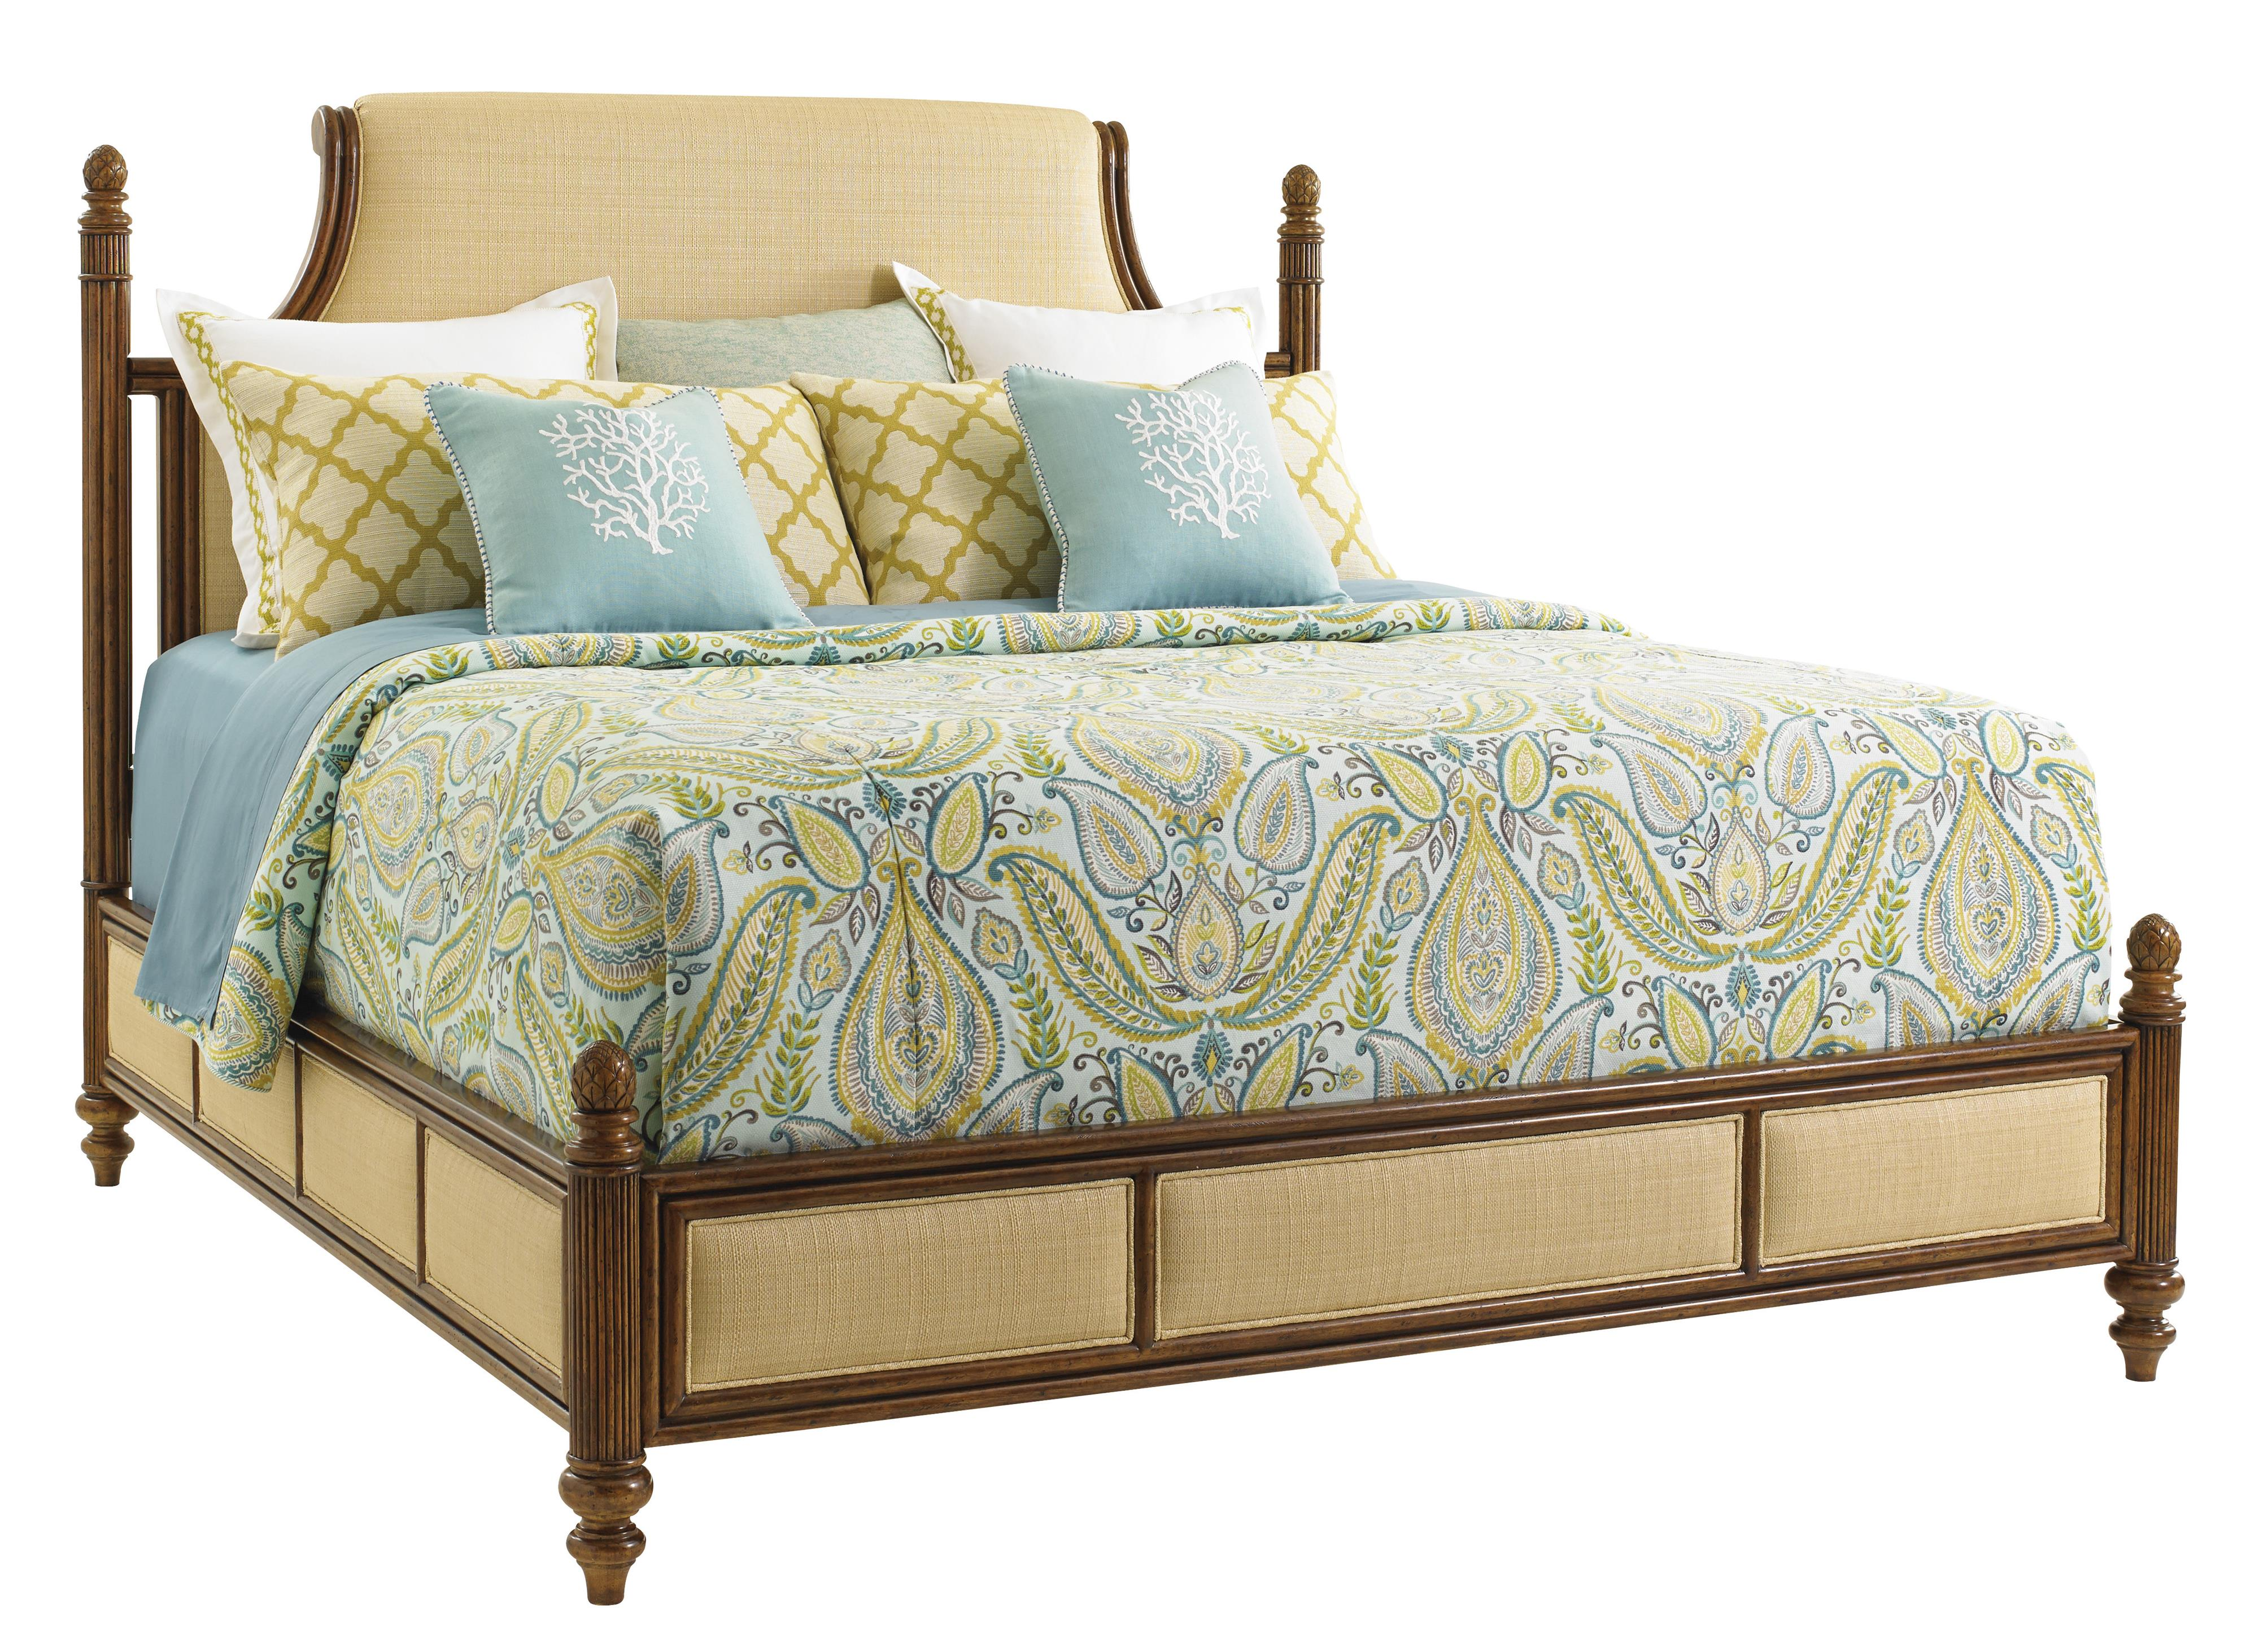 Bali Hai Orchid Bay Upholstered Bed by Tommy Bahama Home at Baer's Furniture